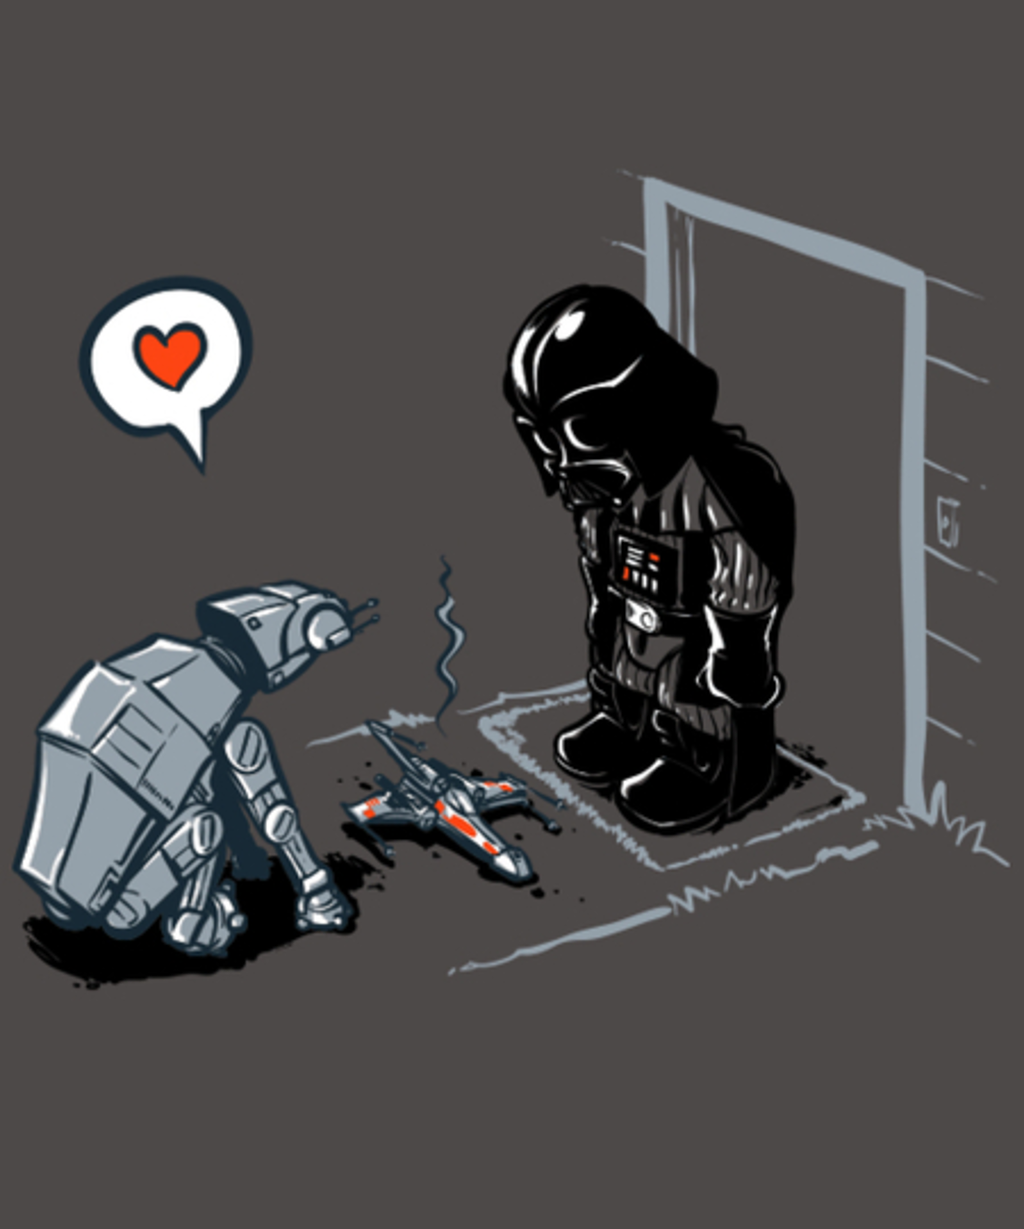 Qwertee: Cat-At Loves You!